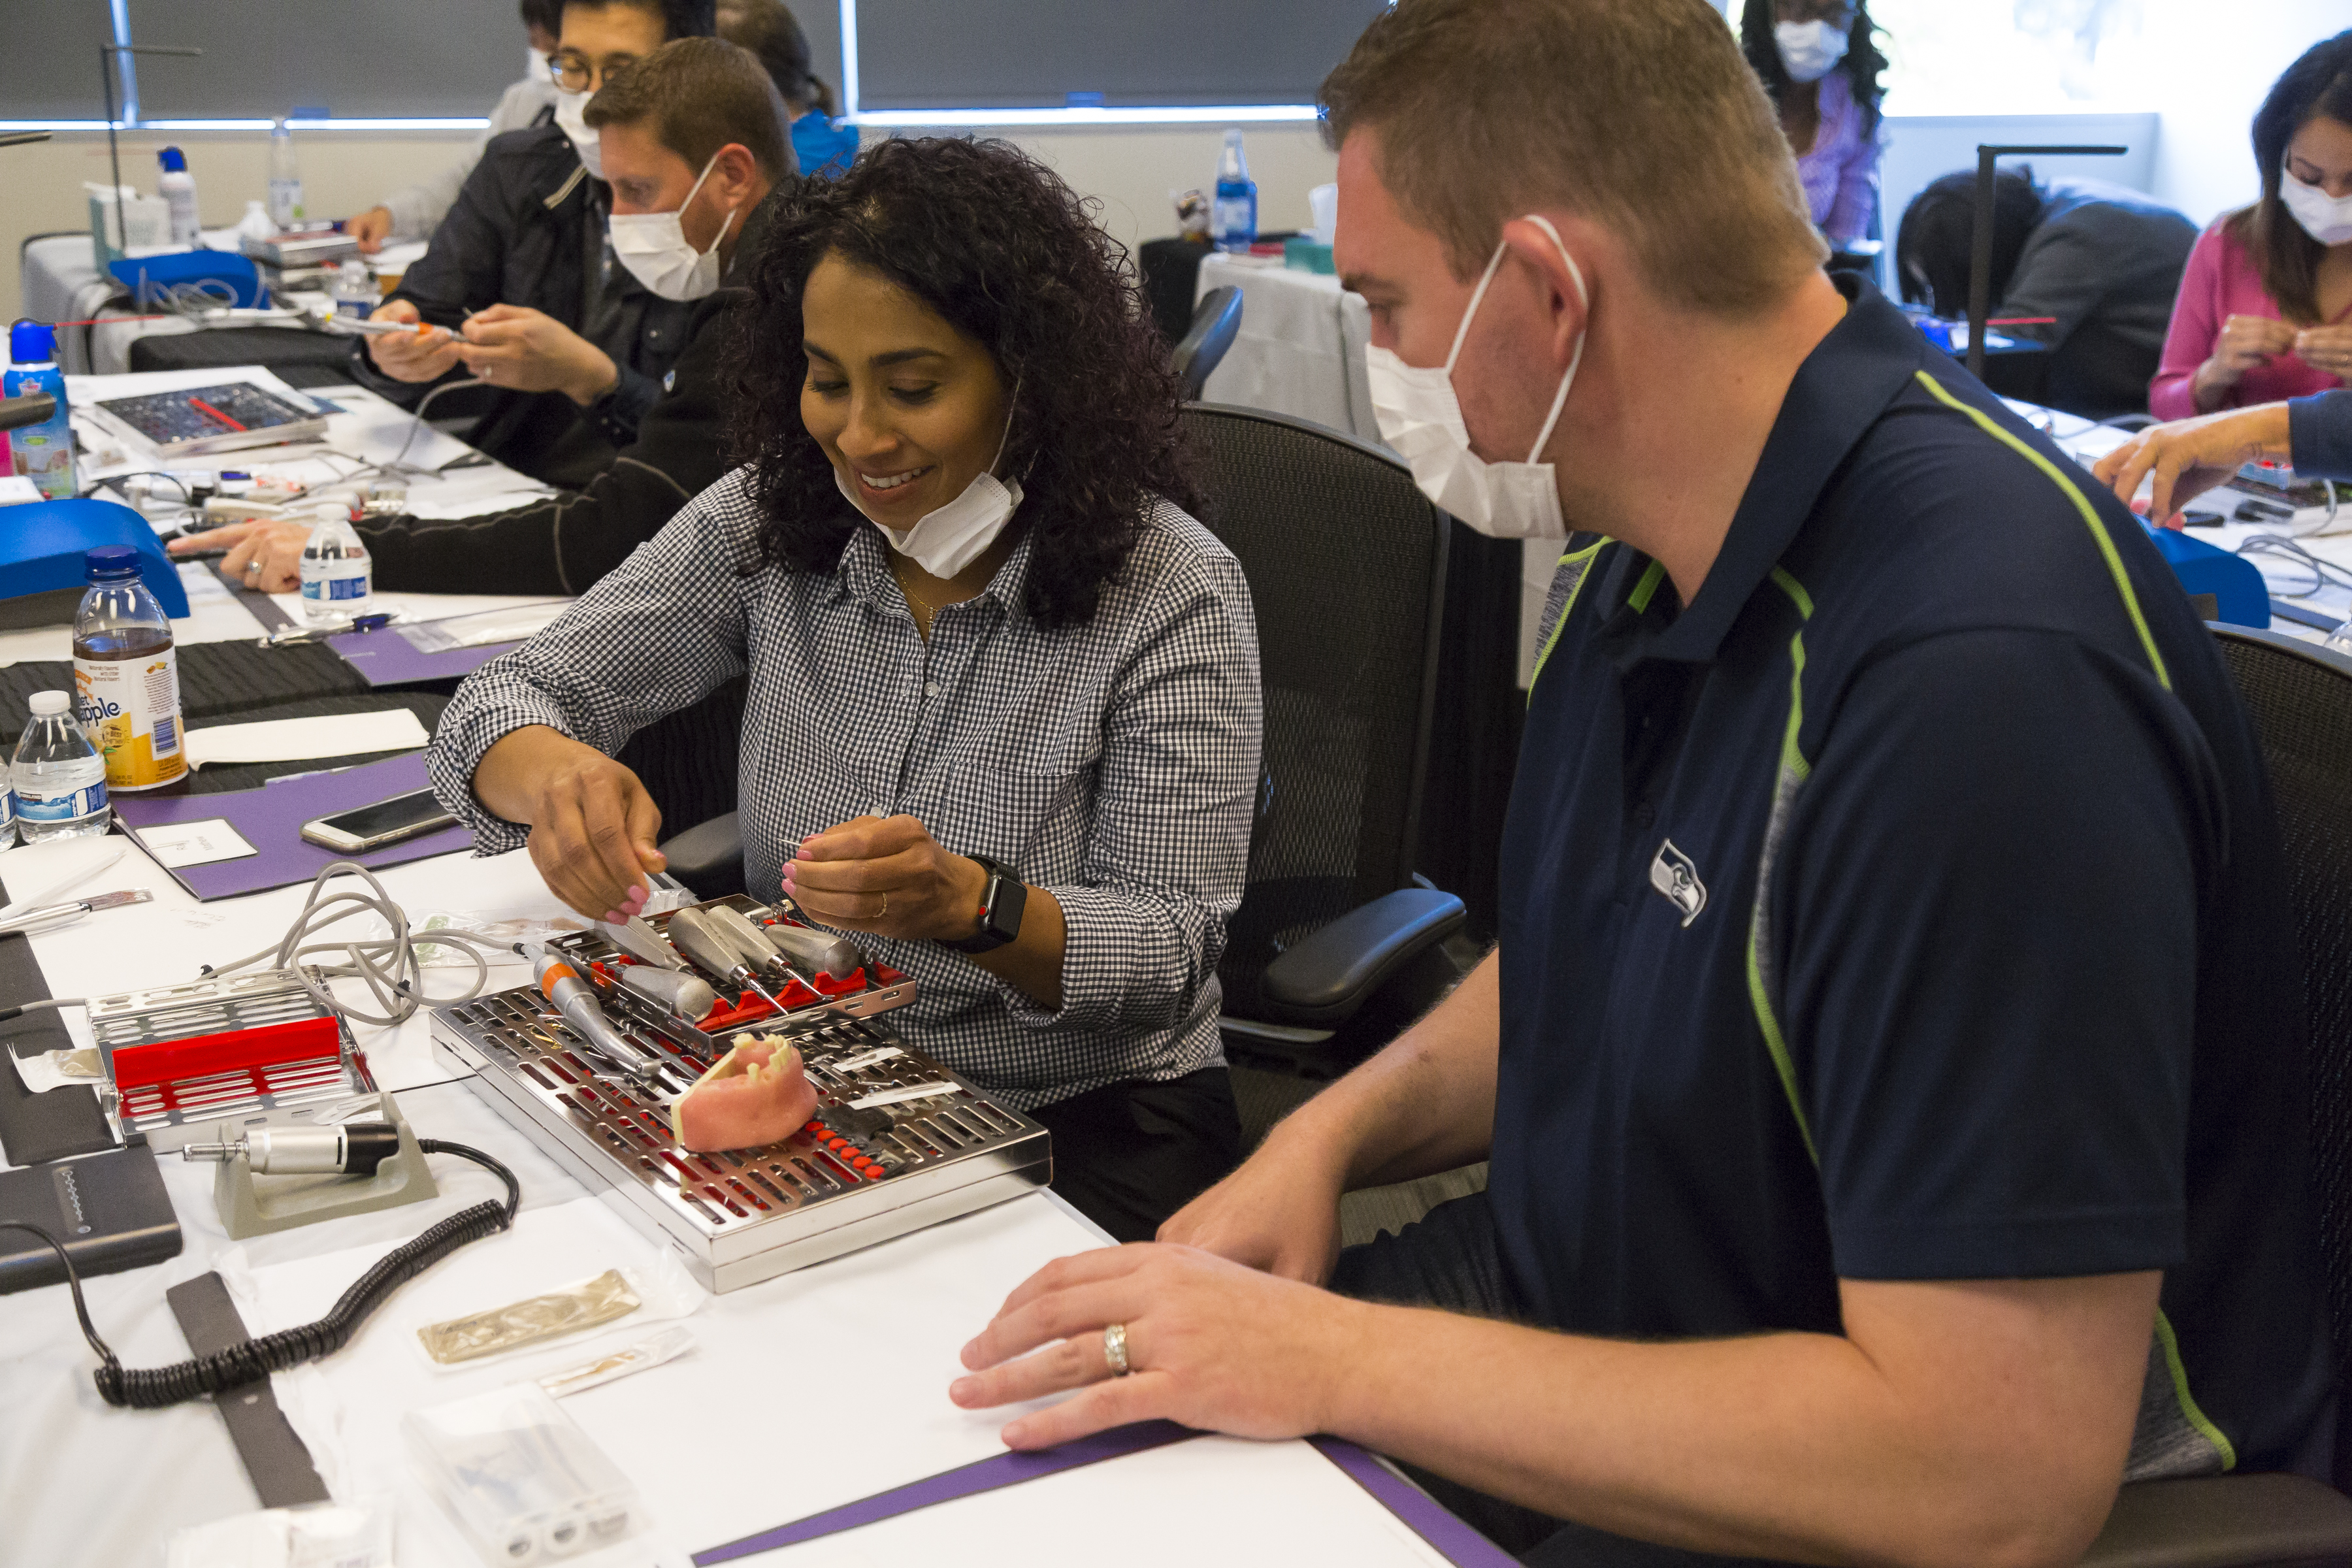 Hands-on Atraumatic Extractions, Bone Grafting and Intro to Implant Placement